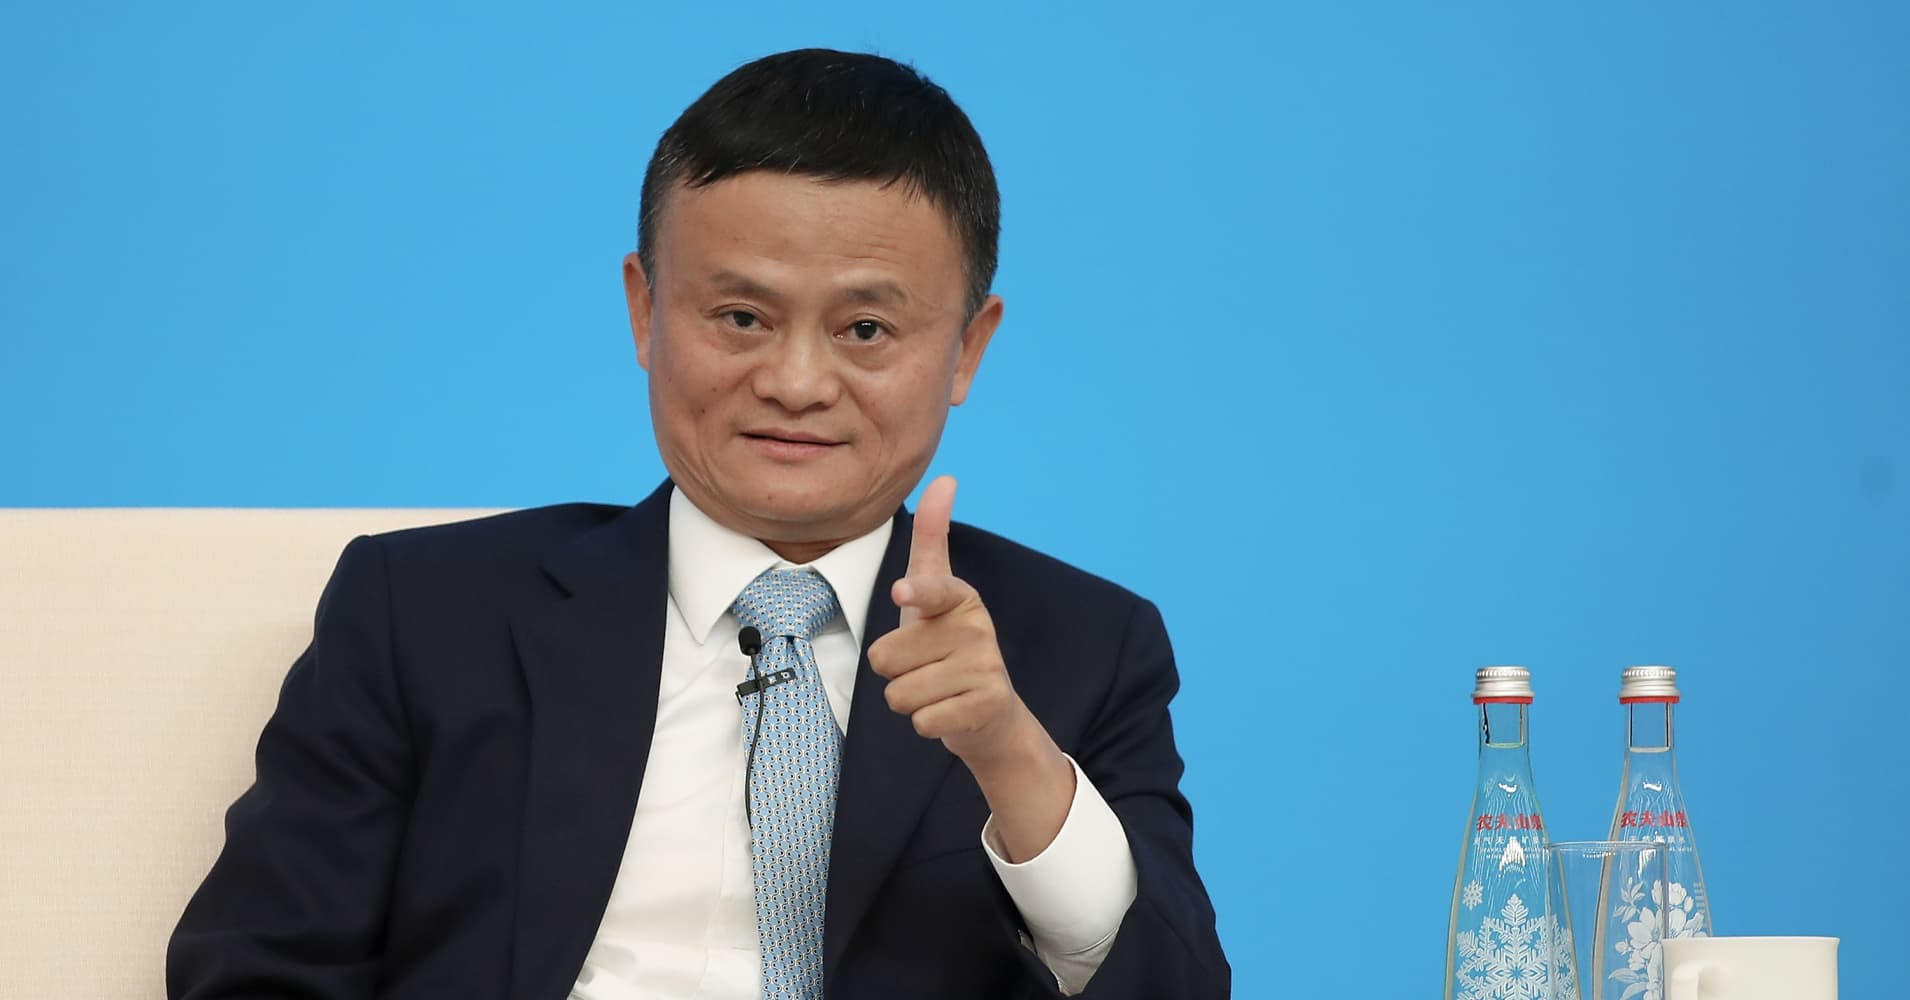 Alibaba founder Jack Ma is a Communist Party member: China state media